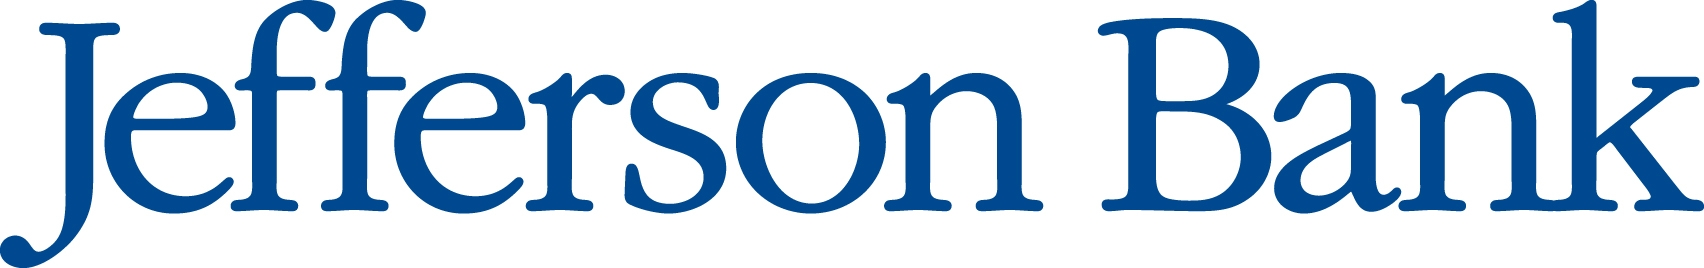 Jefferson Bank logo